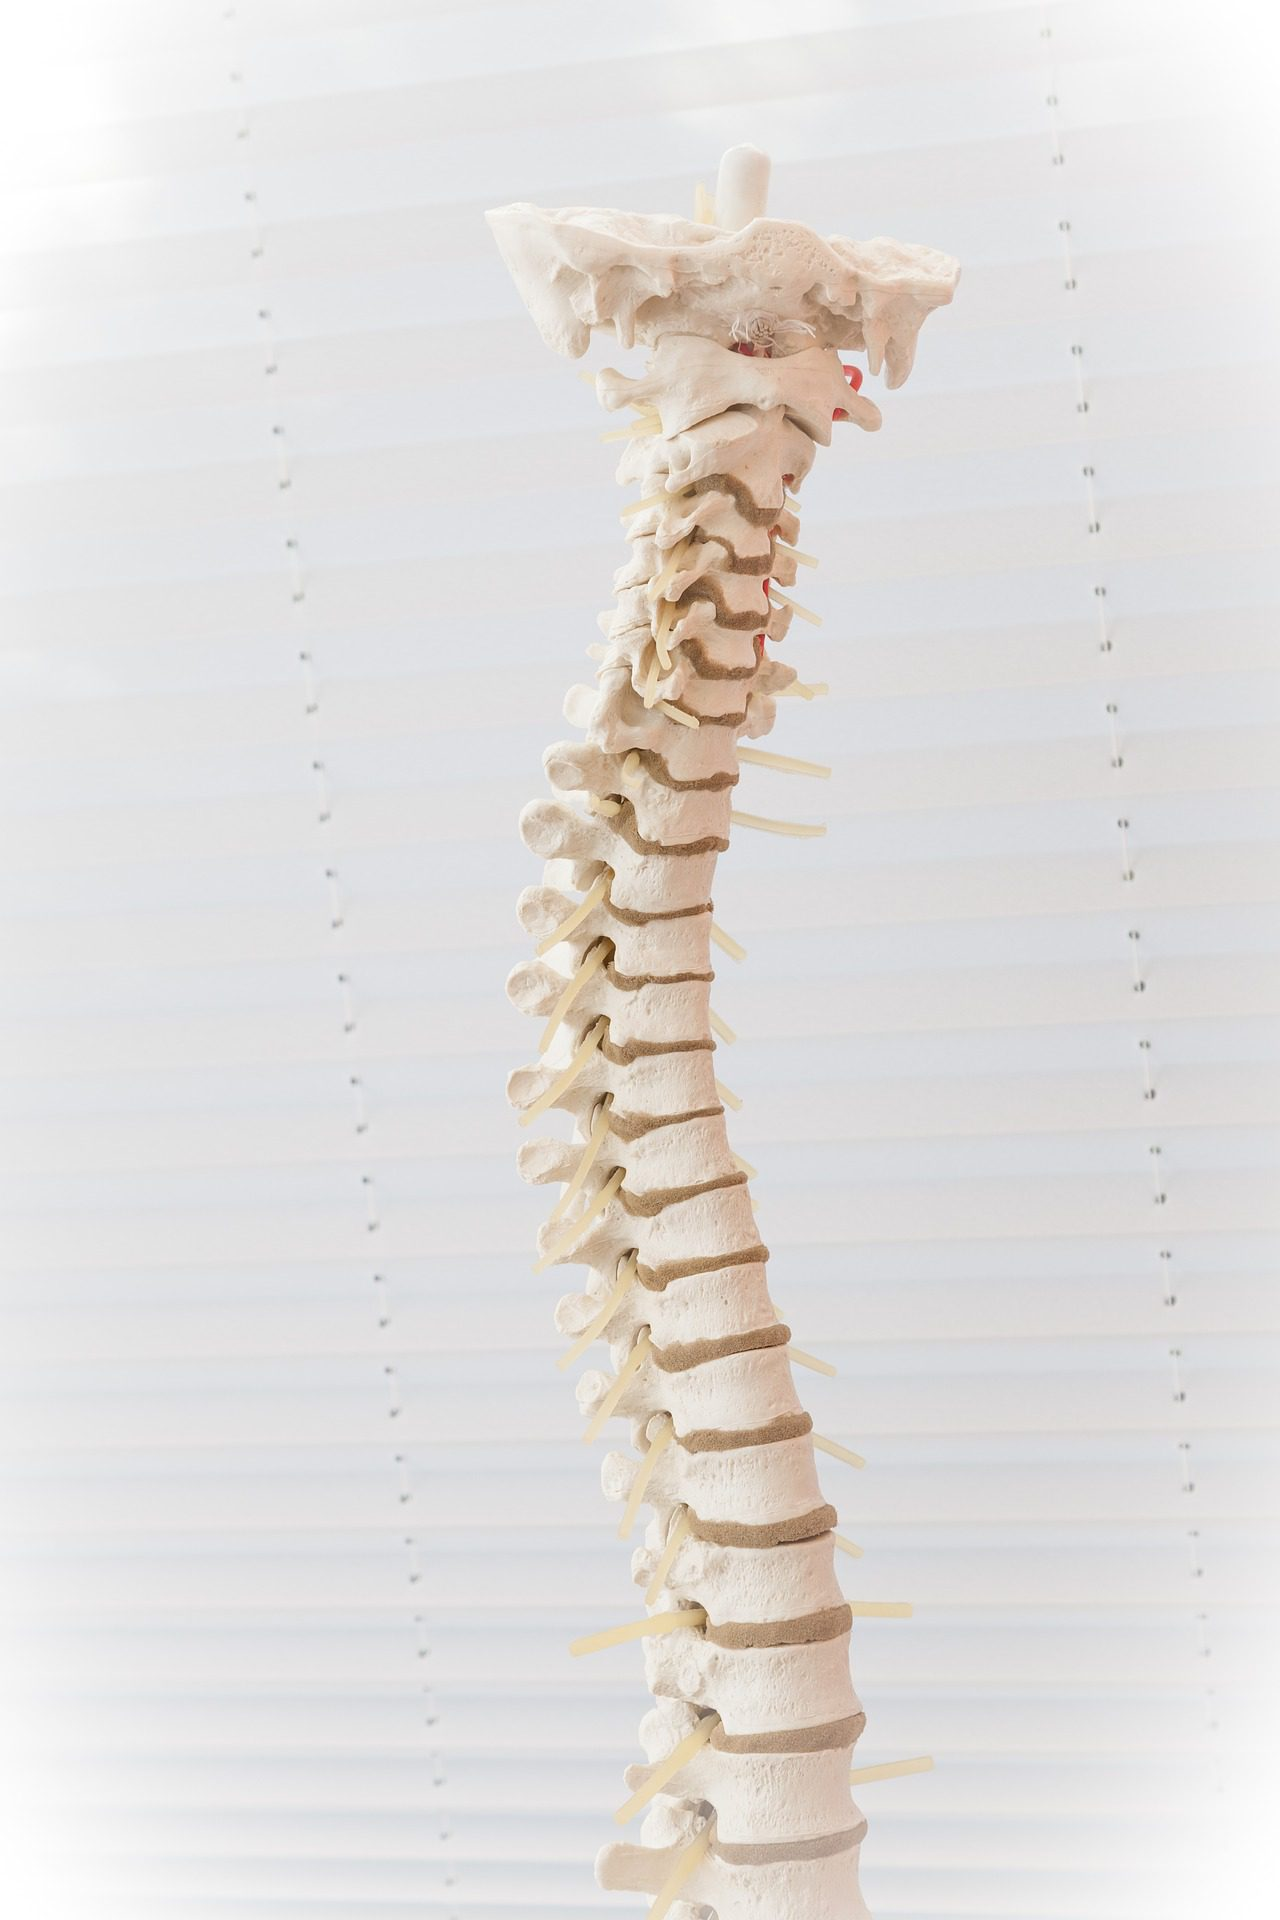 Model of human spine in front of white blinds. Chiropractors are the only professionals trained to specifically diagnose and correct spinal problems naturally